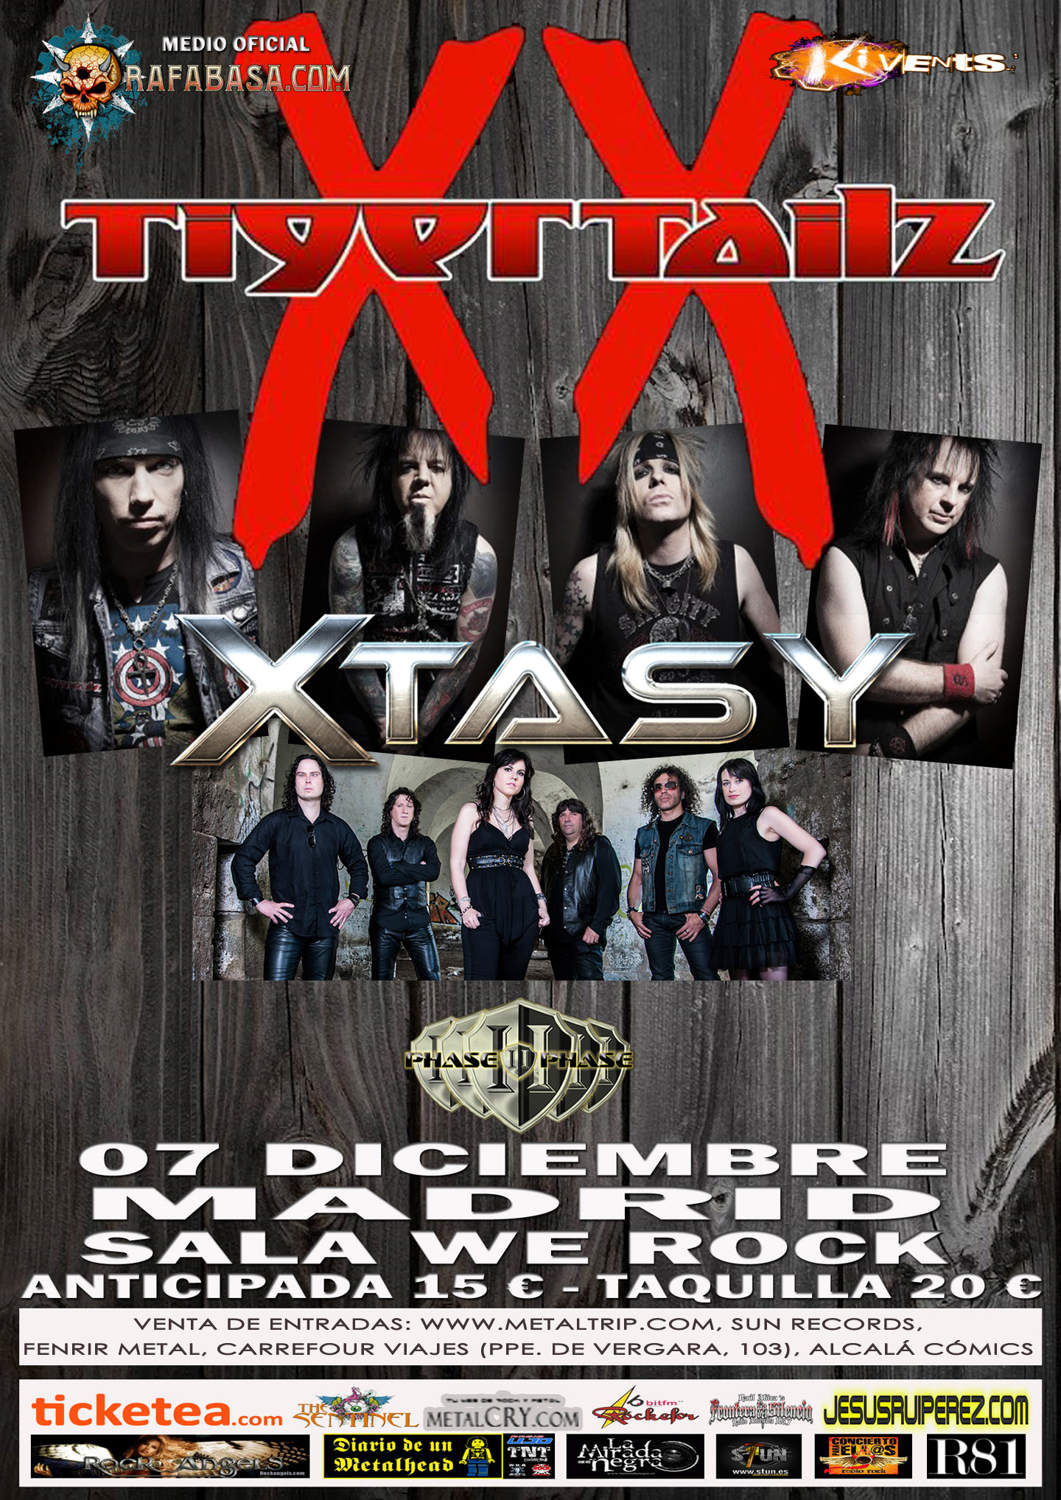 CARTEL TIGERTAILZ MADRID 2014